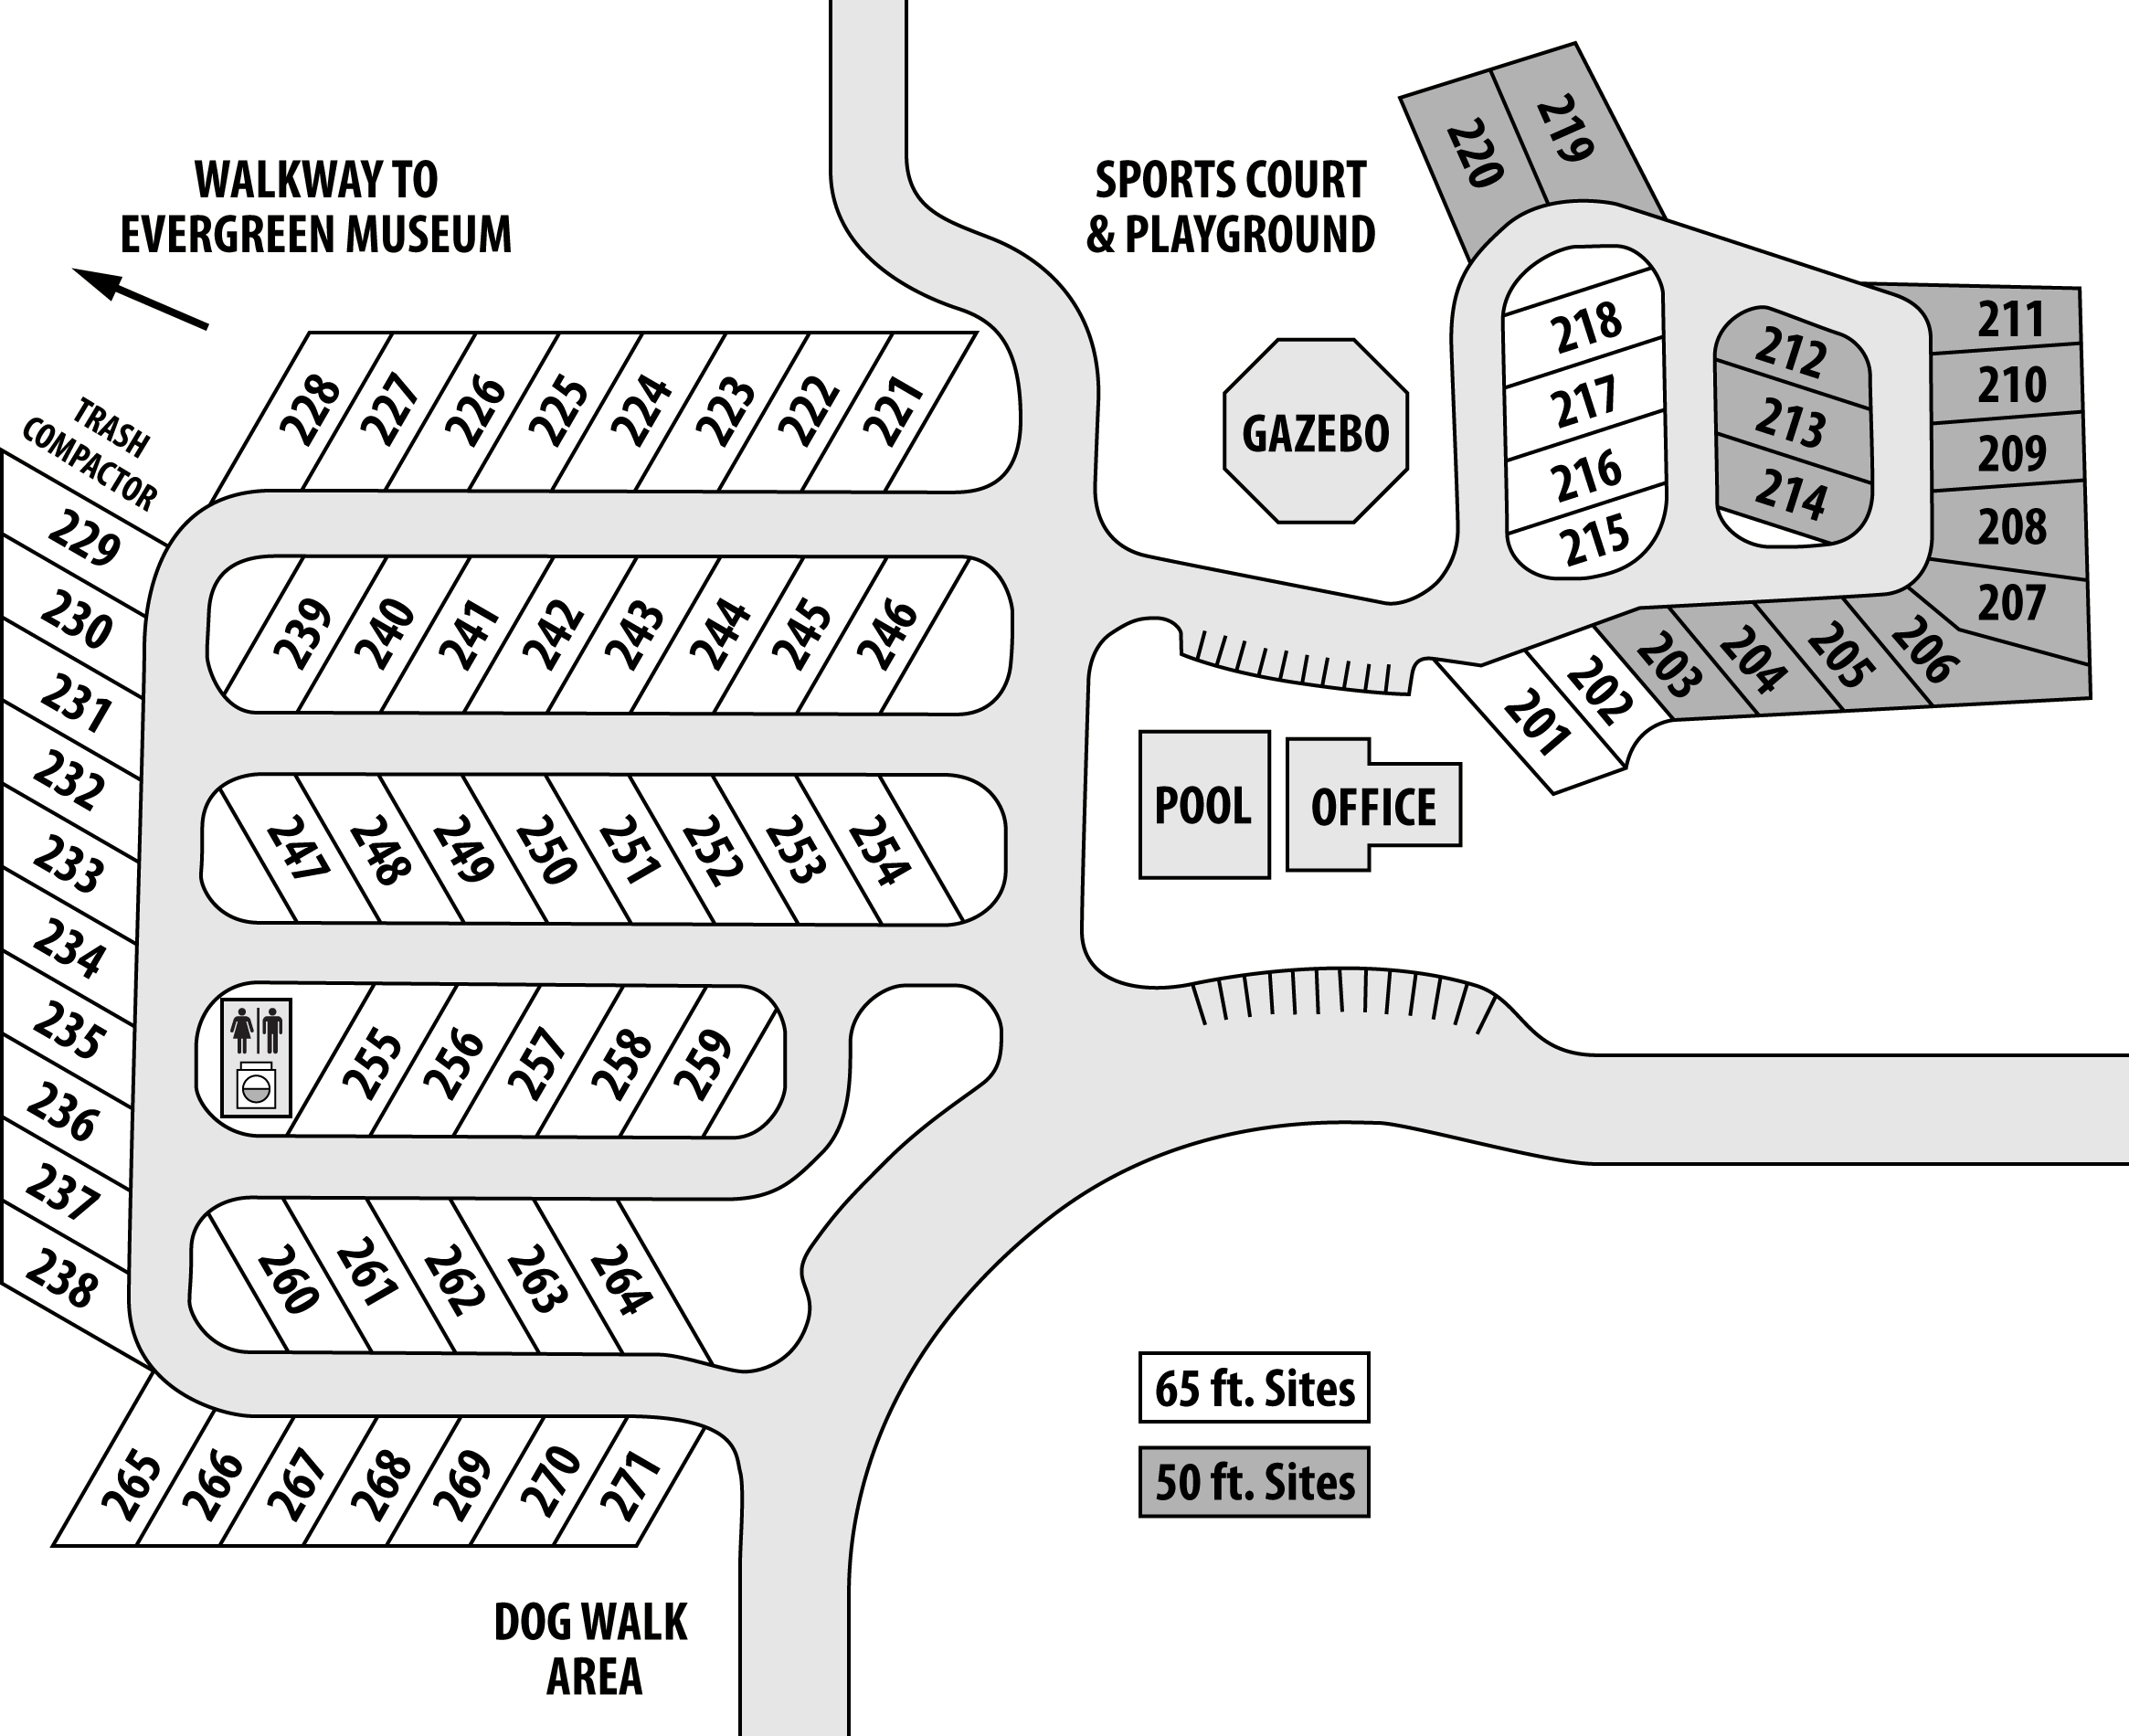 Oldestone Village rv park map